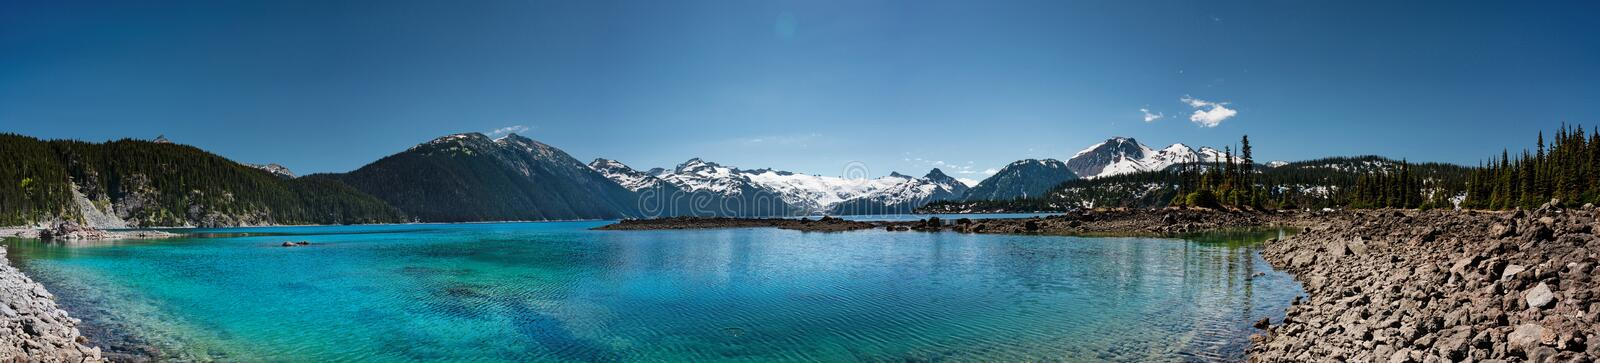 Panoramic view of mountains and turquoise coloured lake in Garibaldi provincial park. BC, Canada stock image